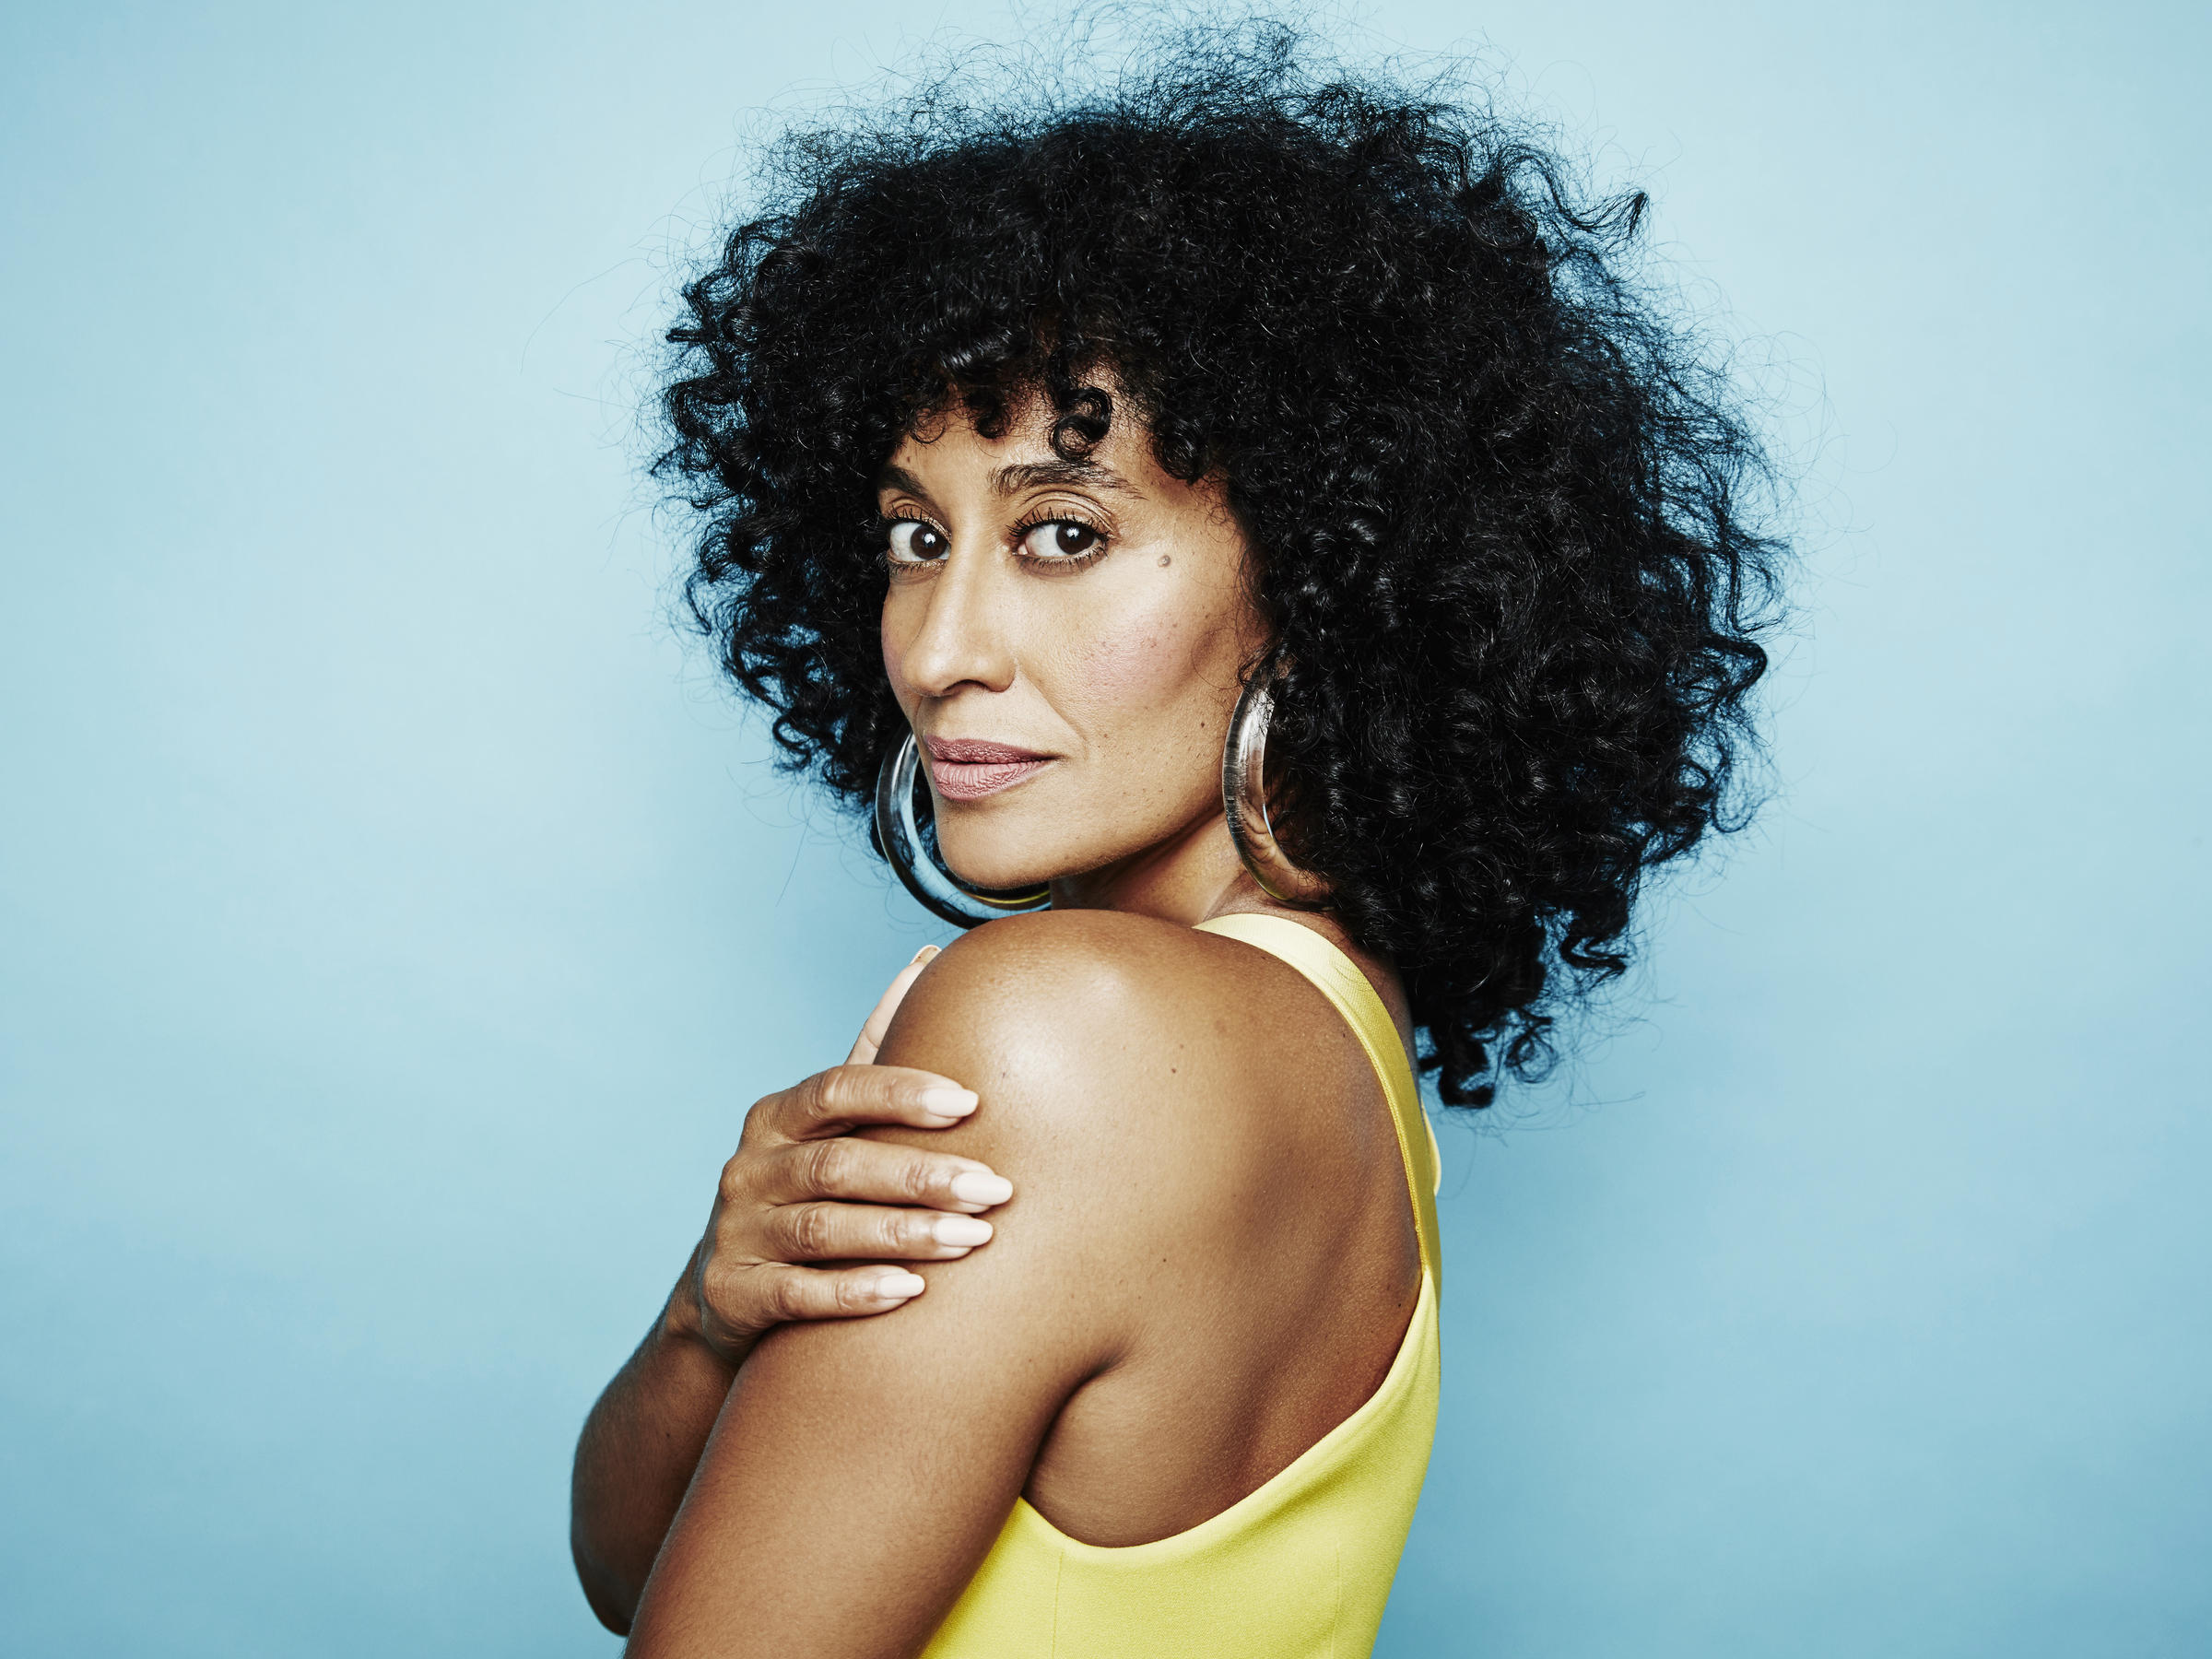 A portrait of Tracee Ellis Ross.